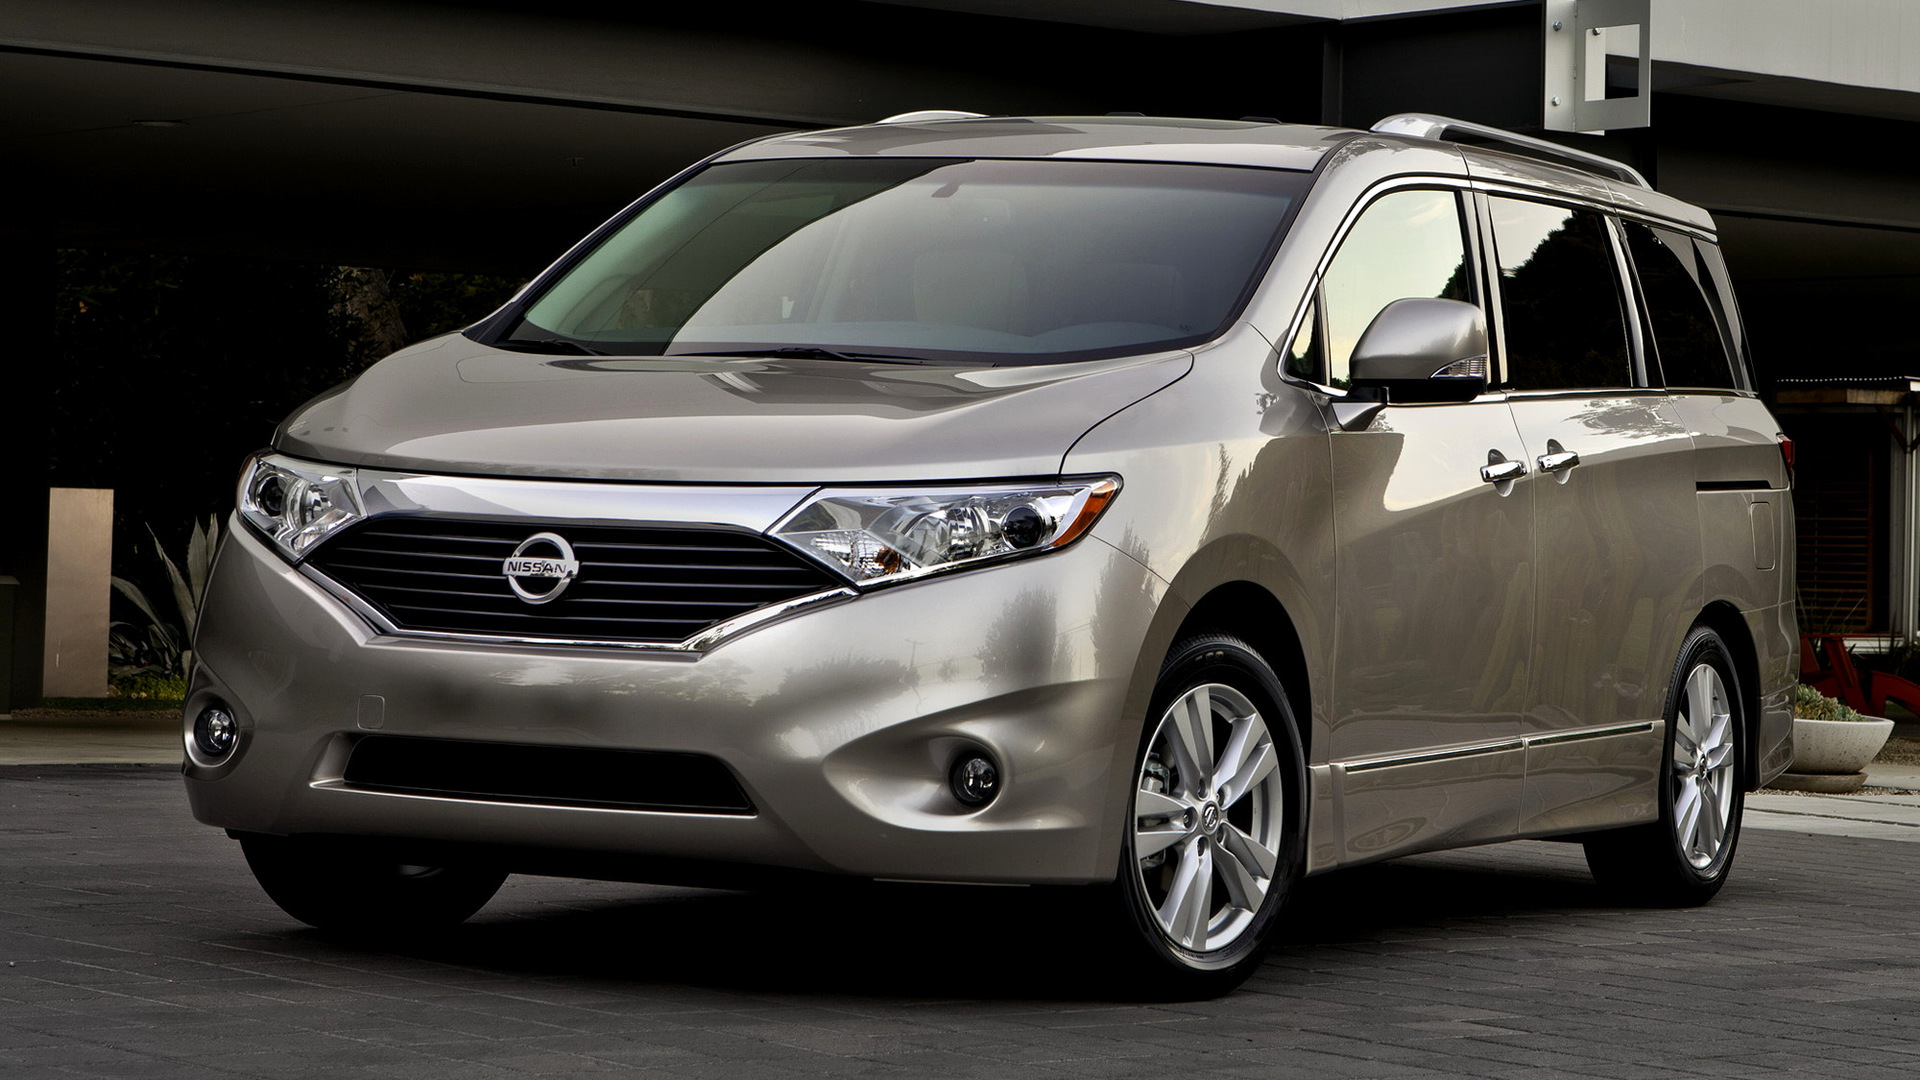 Nissan Quest (2010) Wallpapers and HD Images - Car Pixel